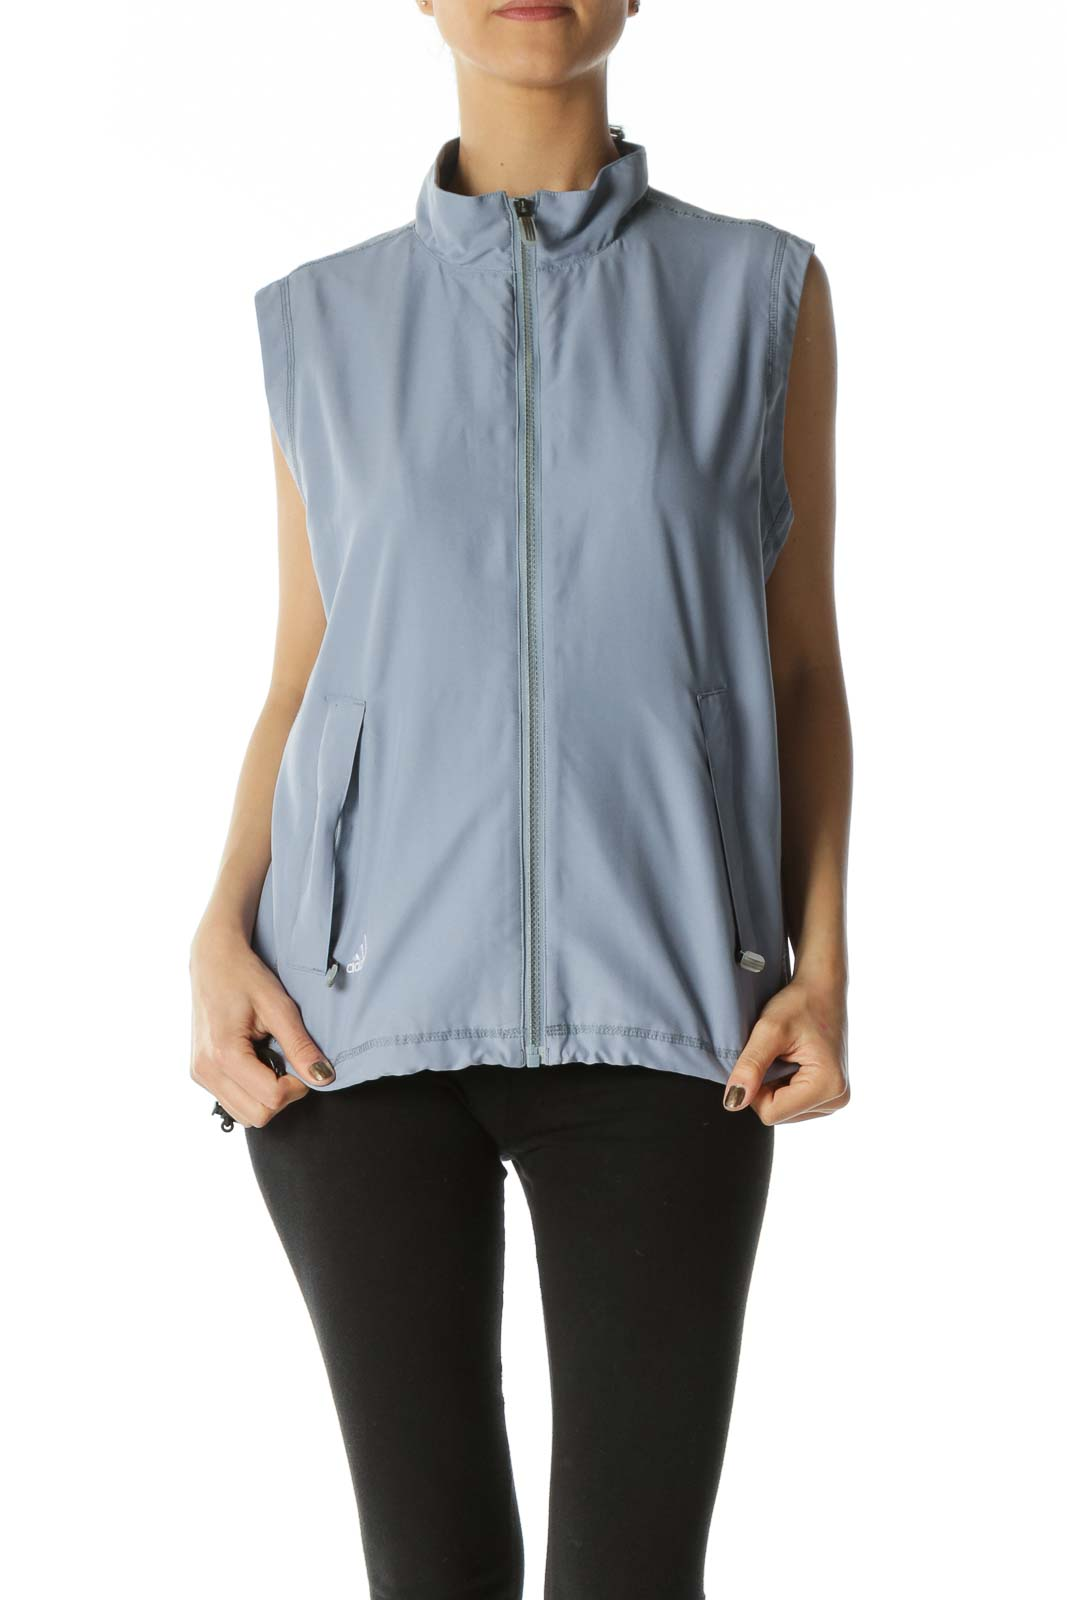 Gray Zippered Pocketed Waist-Drawstring Sports Vest